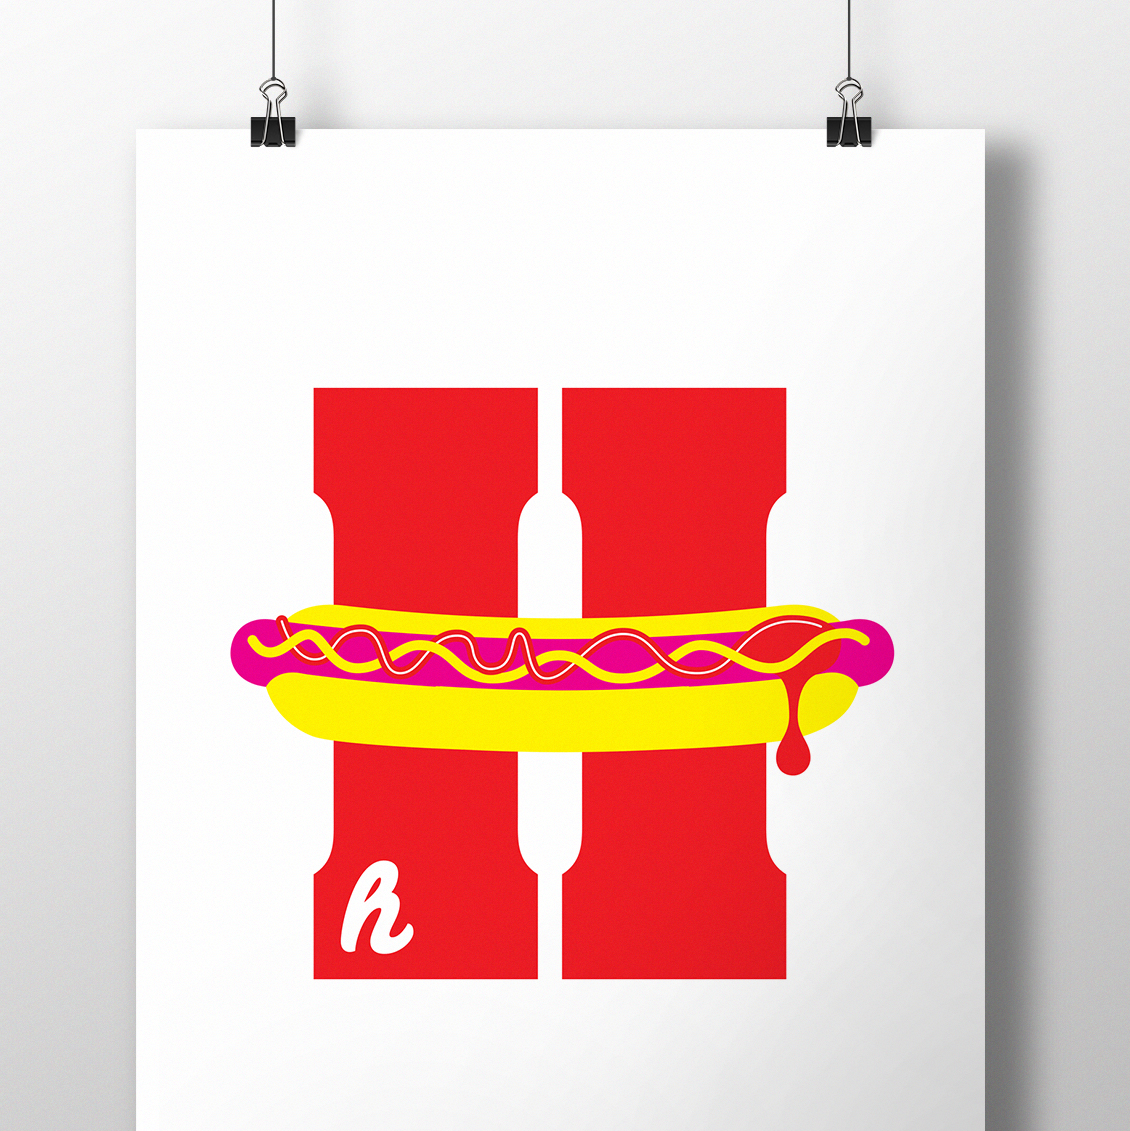 alphablot alphabet illustration hotdog letter h